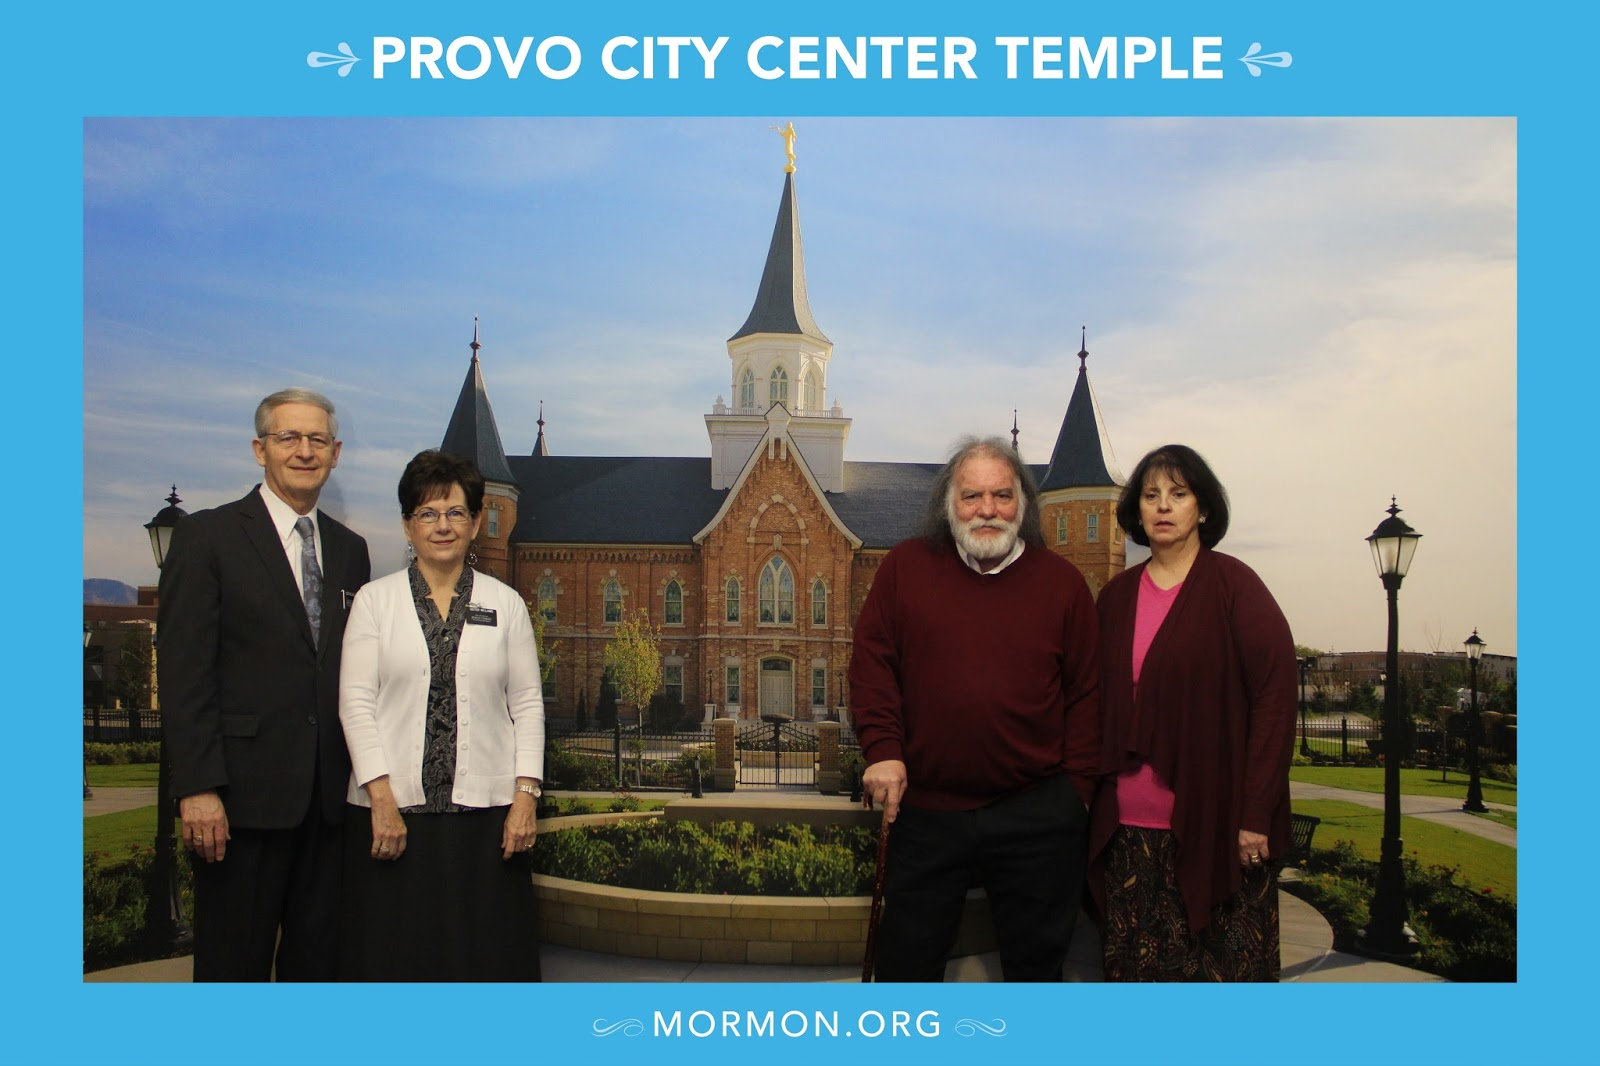 We Attended The Provo City Center Temple Open House Today With Our Dear  Friendu0027s Steve And Debbie. We Enjoyed The Tour And Are Very Excited For The  ...